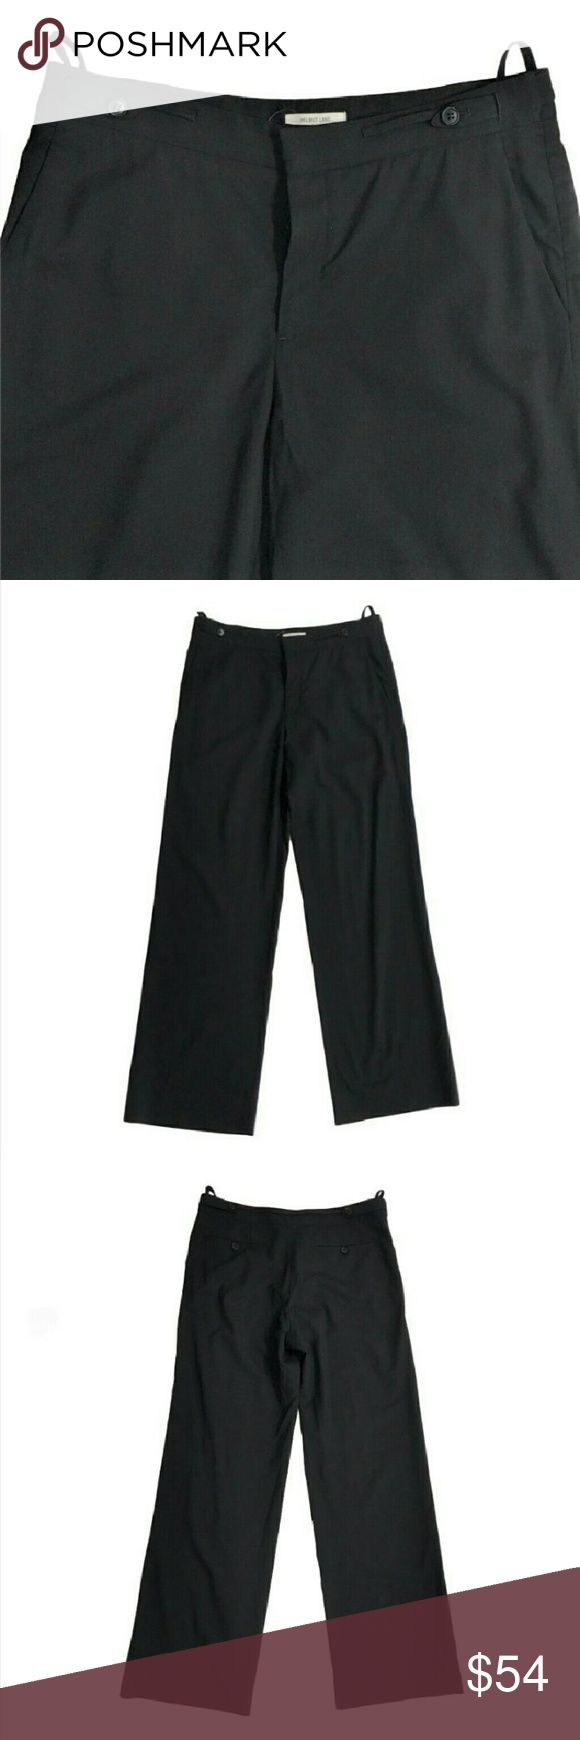 """Helmut Lang women's pants black wool trousers In Flawless condition, classic cut trousers with a button fly and 4 Pockets. Straight wide cut legs and button tabs at waist. I just haven't been like to show detail is there a dark black and appeared to be new. Made of the medium to lightweight 98% wool 2% elastane. Waste - 34. Hips (7 inches down from waist) - 42. Rise - 10.5. Inseam -35. And an extra 1.5"""" of material to lengthen if necessary. Helmut Lang Pants"""